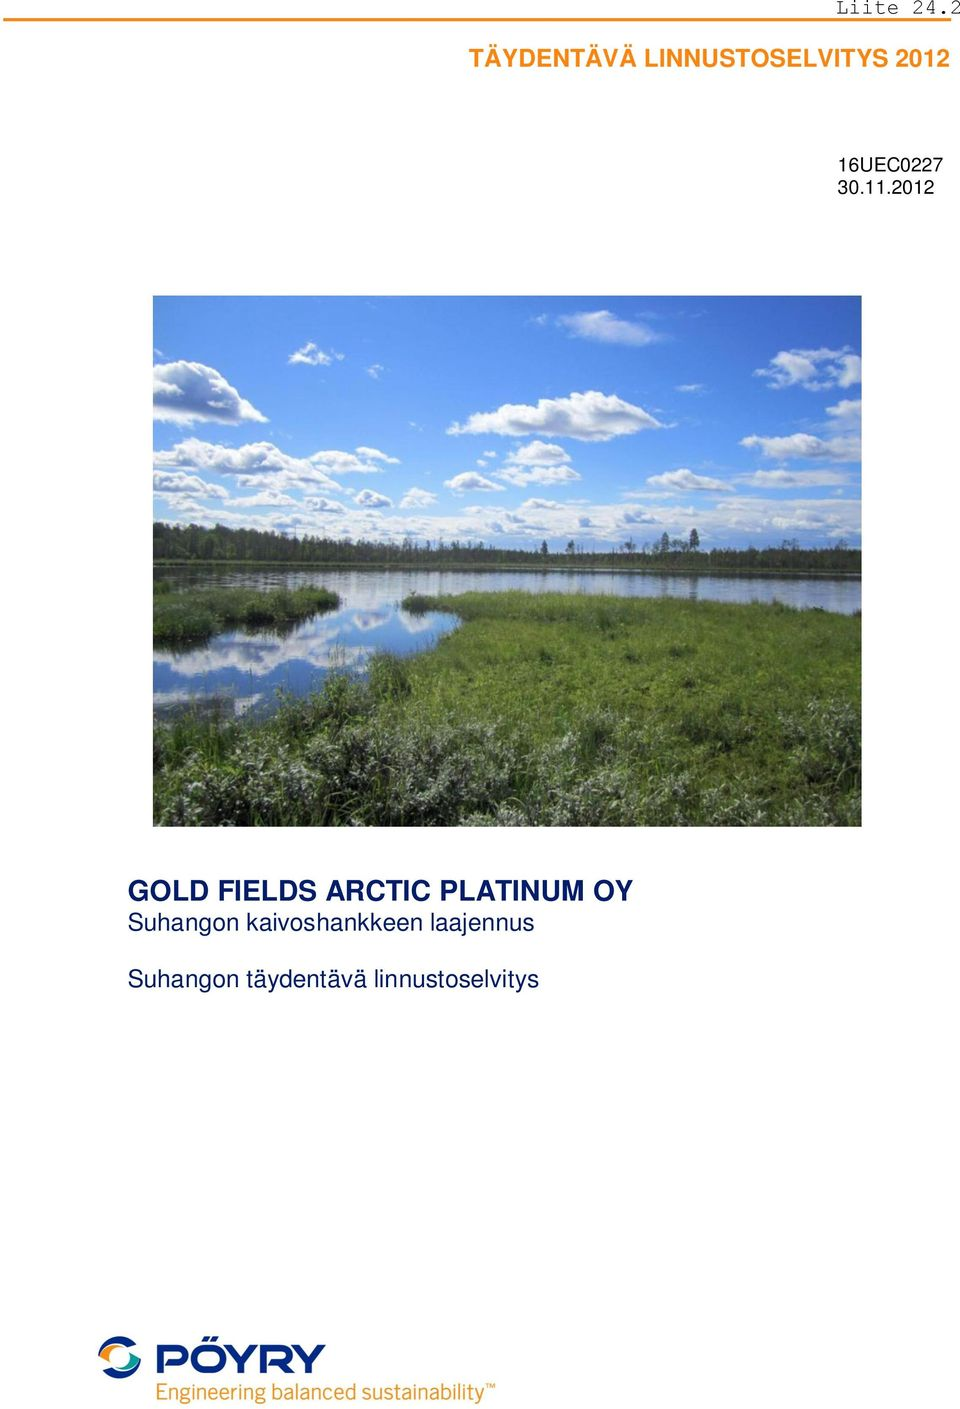 2012 GOLD FIELDS ARCTIC PLATINUM OY